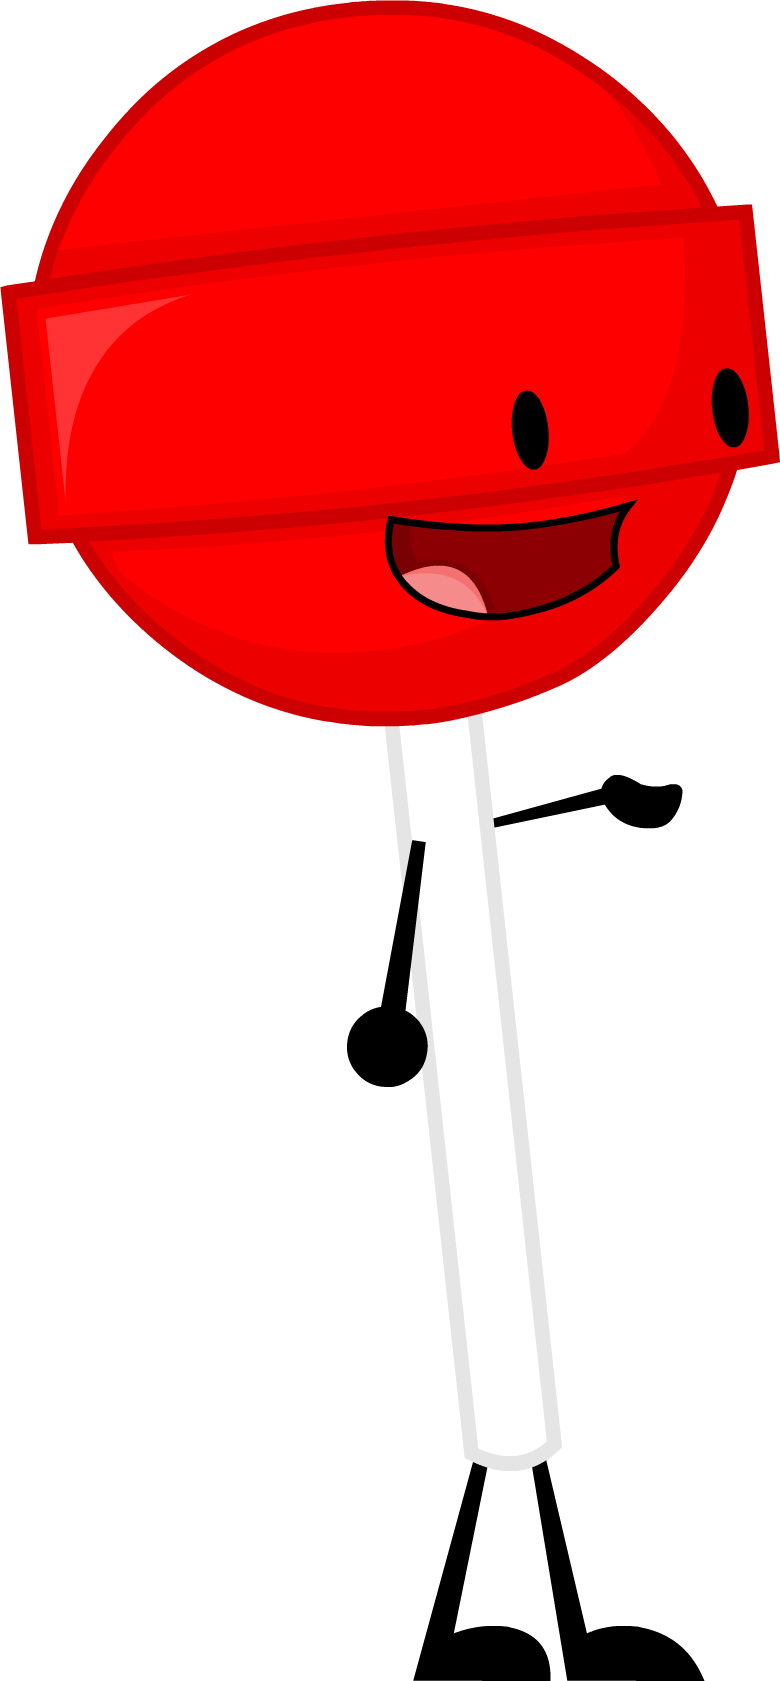 Lollipop clipart object. Image aw png shows